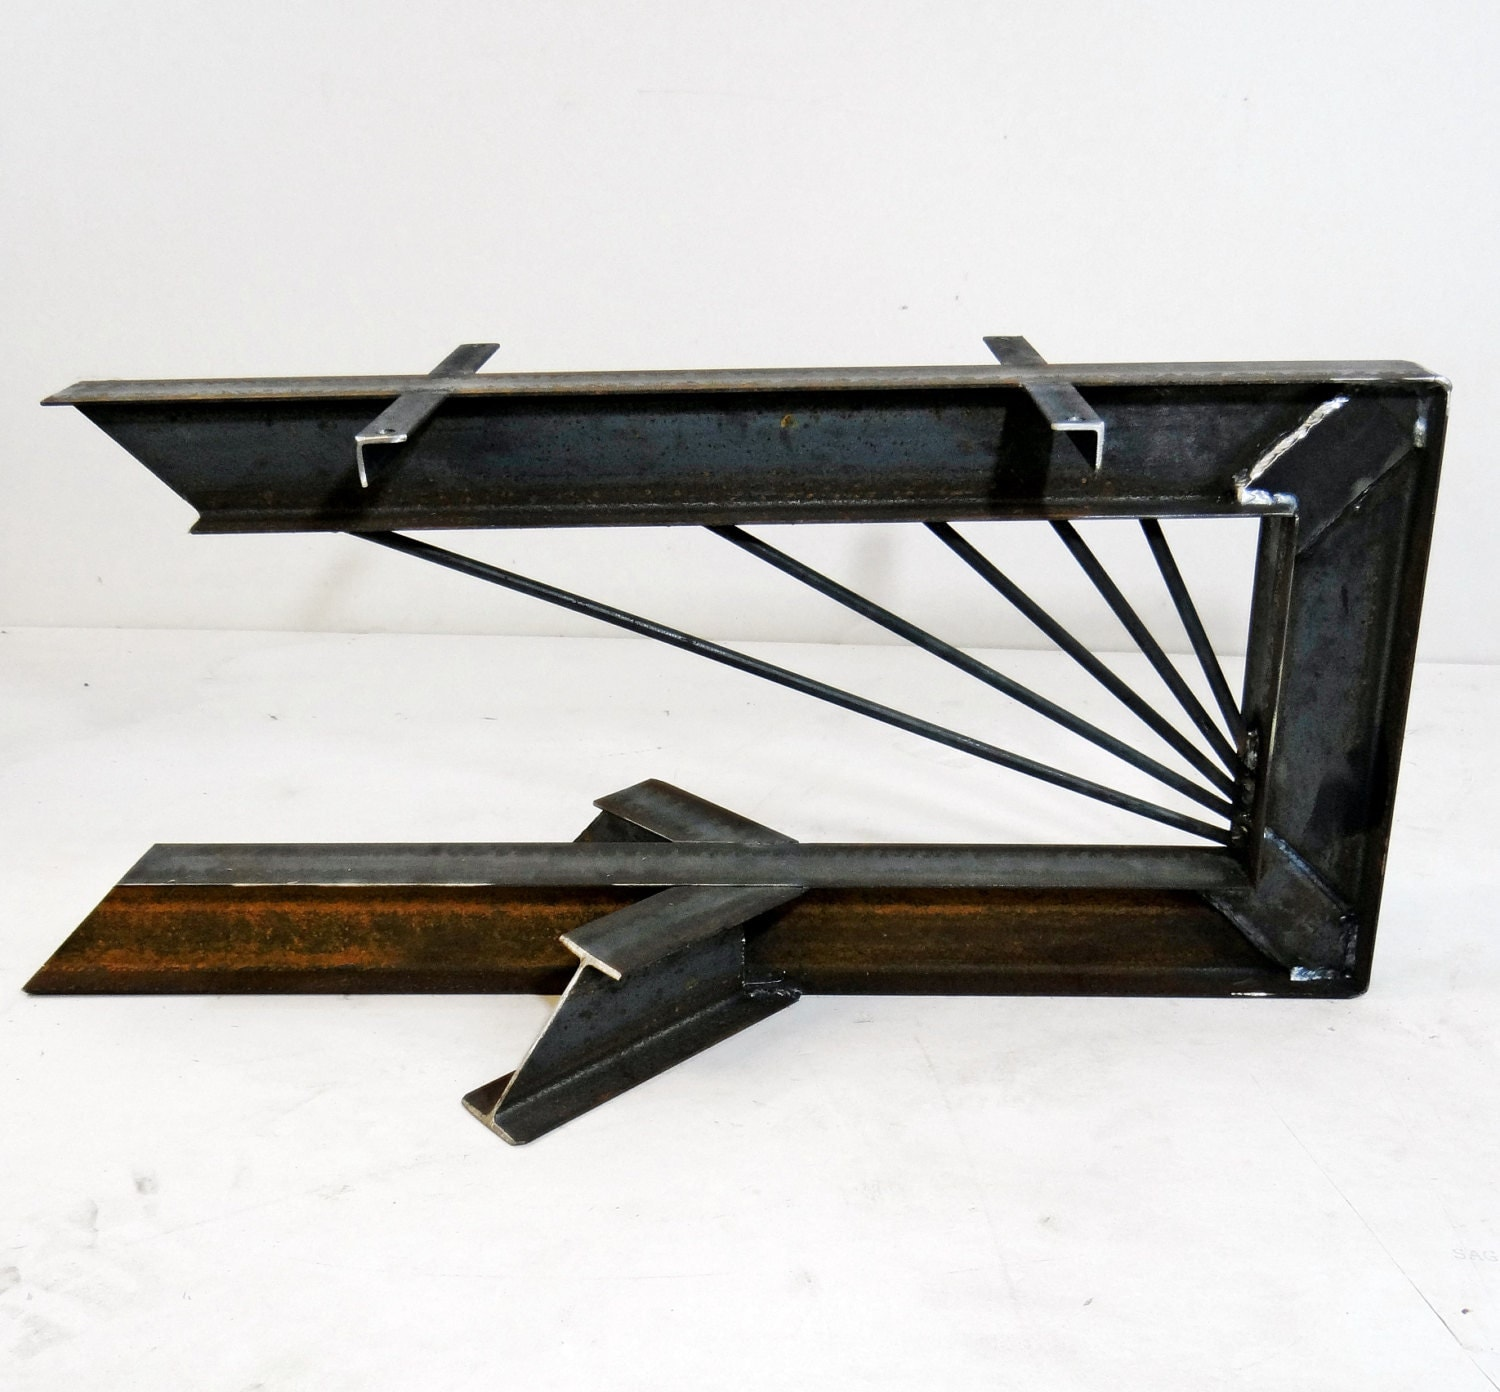 Cantilevered Steel I Beam Table Legs By Timberforgewoodworks